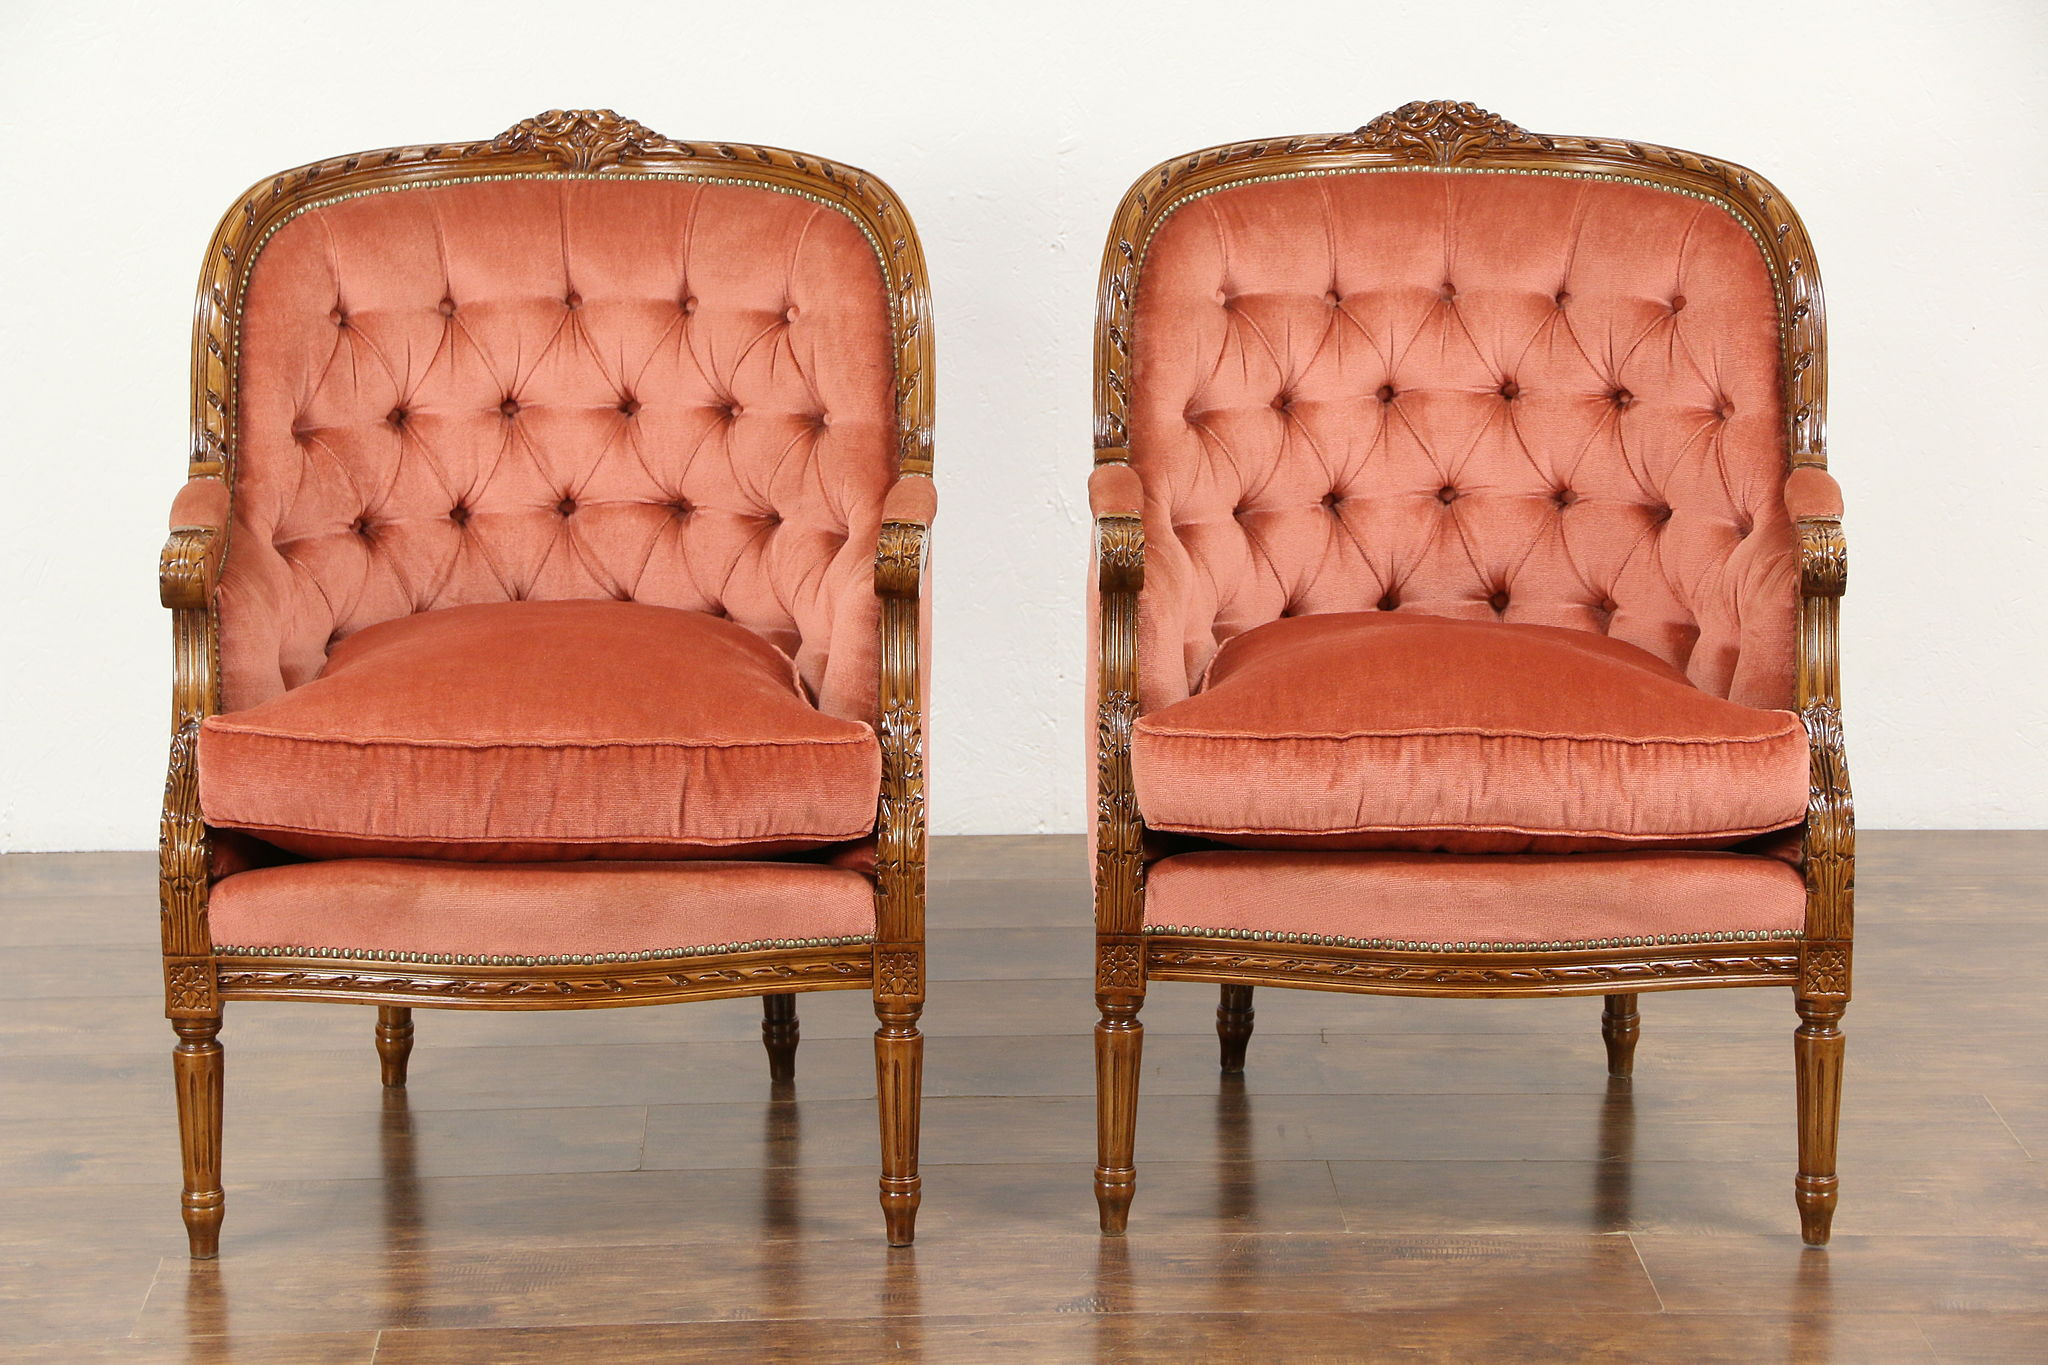 Pair Of French Louis Xvi Style Vintage Carved Chairs Tufted Upholstery